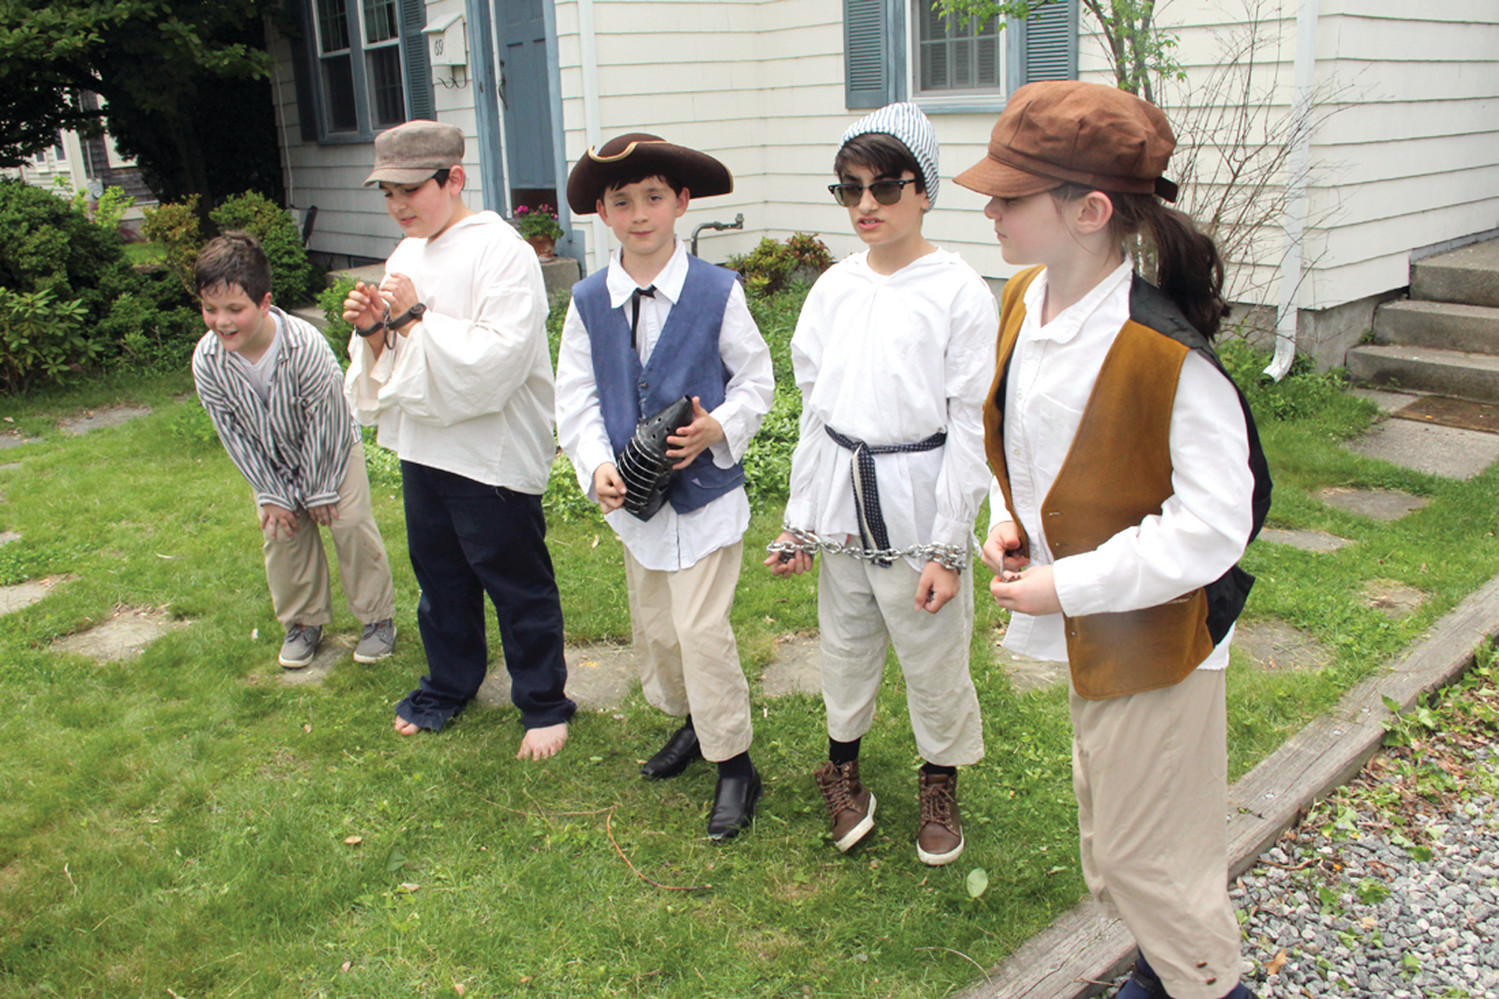 JAIL HOUSE GANG: When those on tour learned a hog went missing in the village and a suspect had been apprehended, they looked on as justice played out. Playing various roles from left were Joshua Mahoney, Liam Meehan, Joshua Pacheco and Beth Vitale, the bailsman.